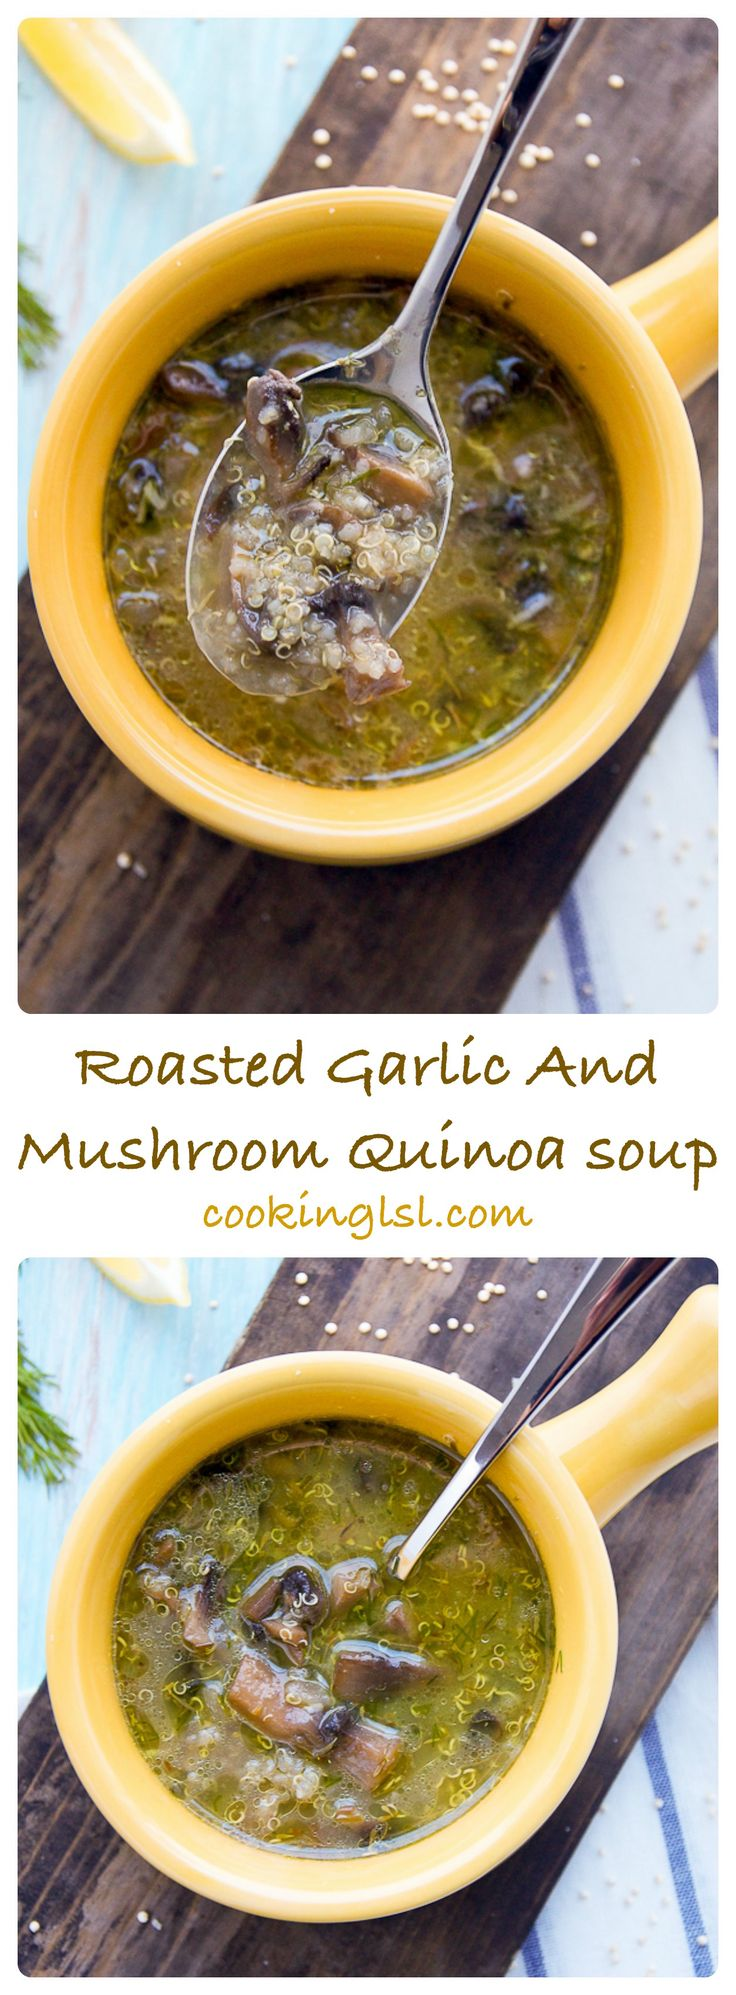 Roasted Garlic And Mushroom Quinoa Soup